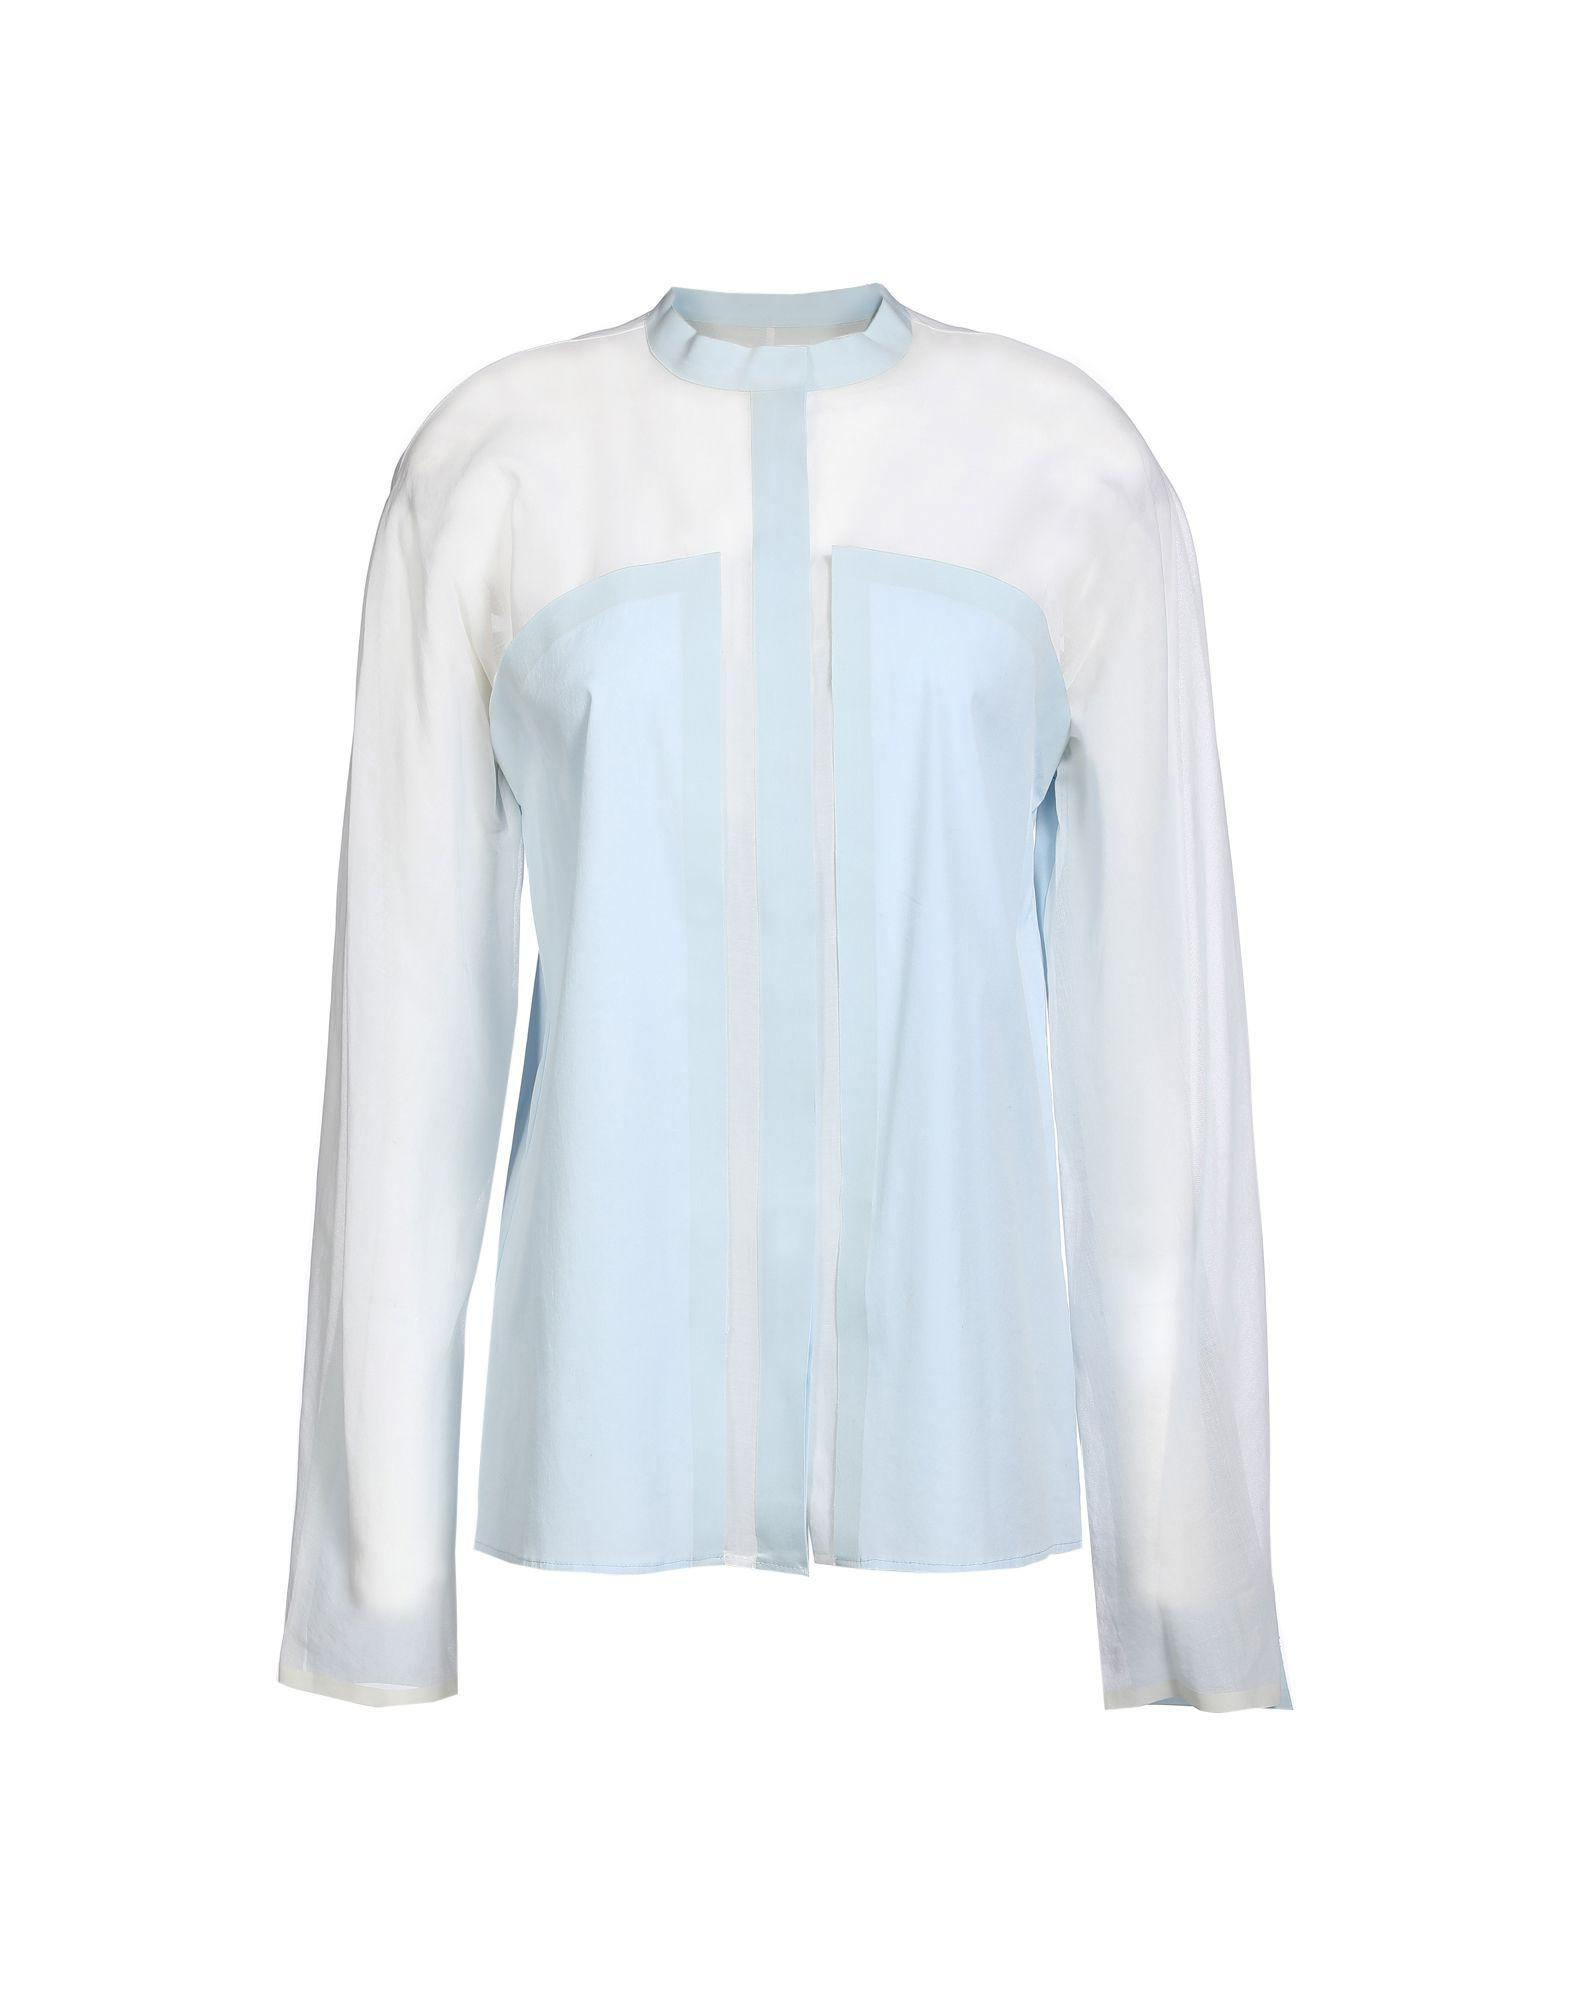 Vionnet Patterned Shirts & Blouses In Sky Blue